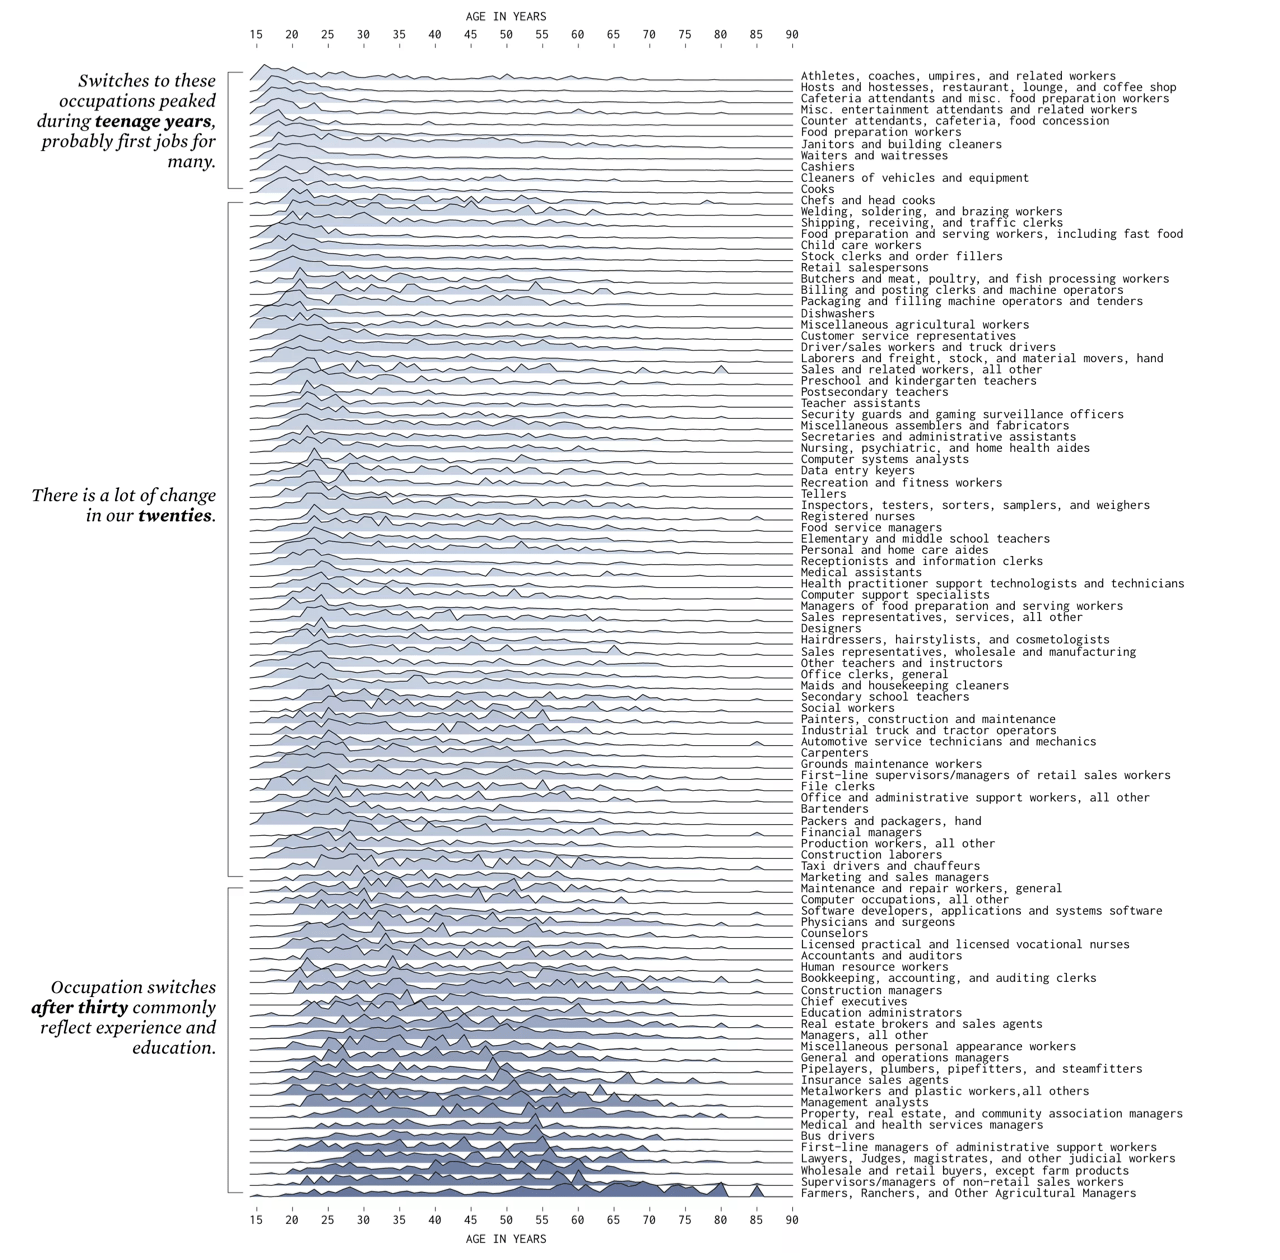 When People Find a New Job | FlowingData(Nathan Yau)